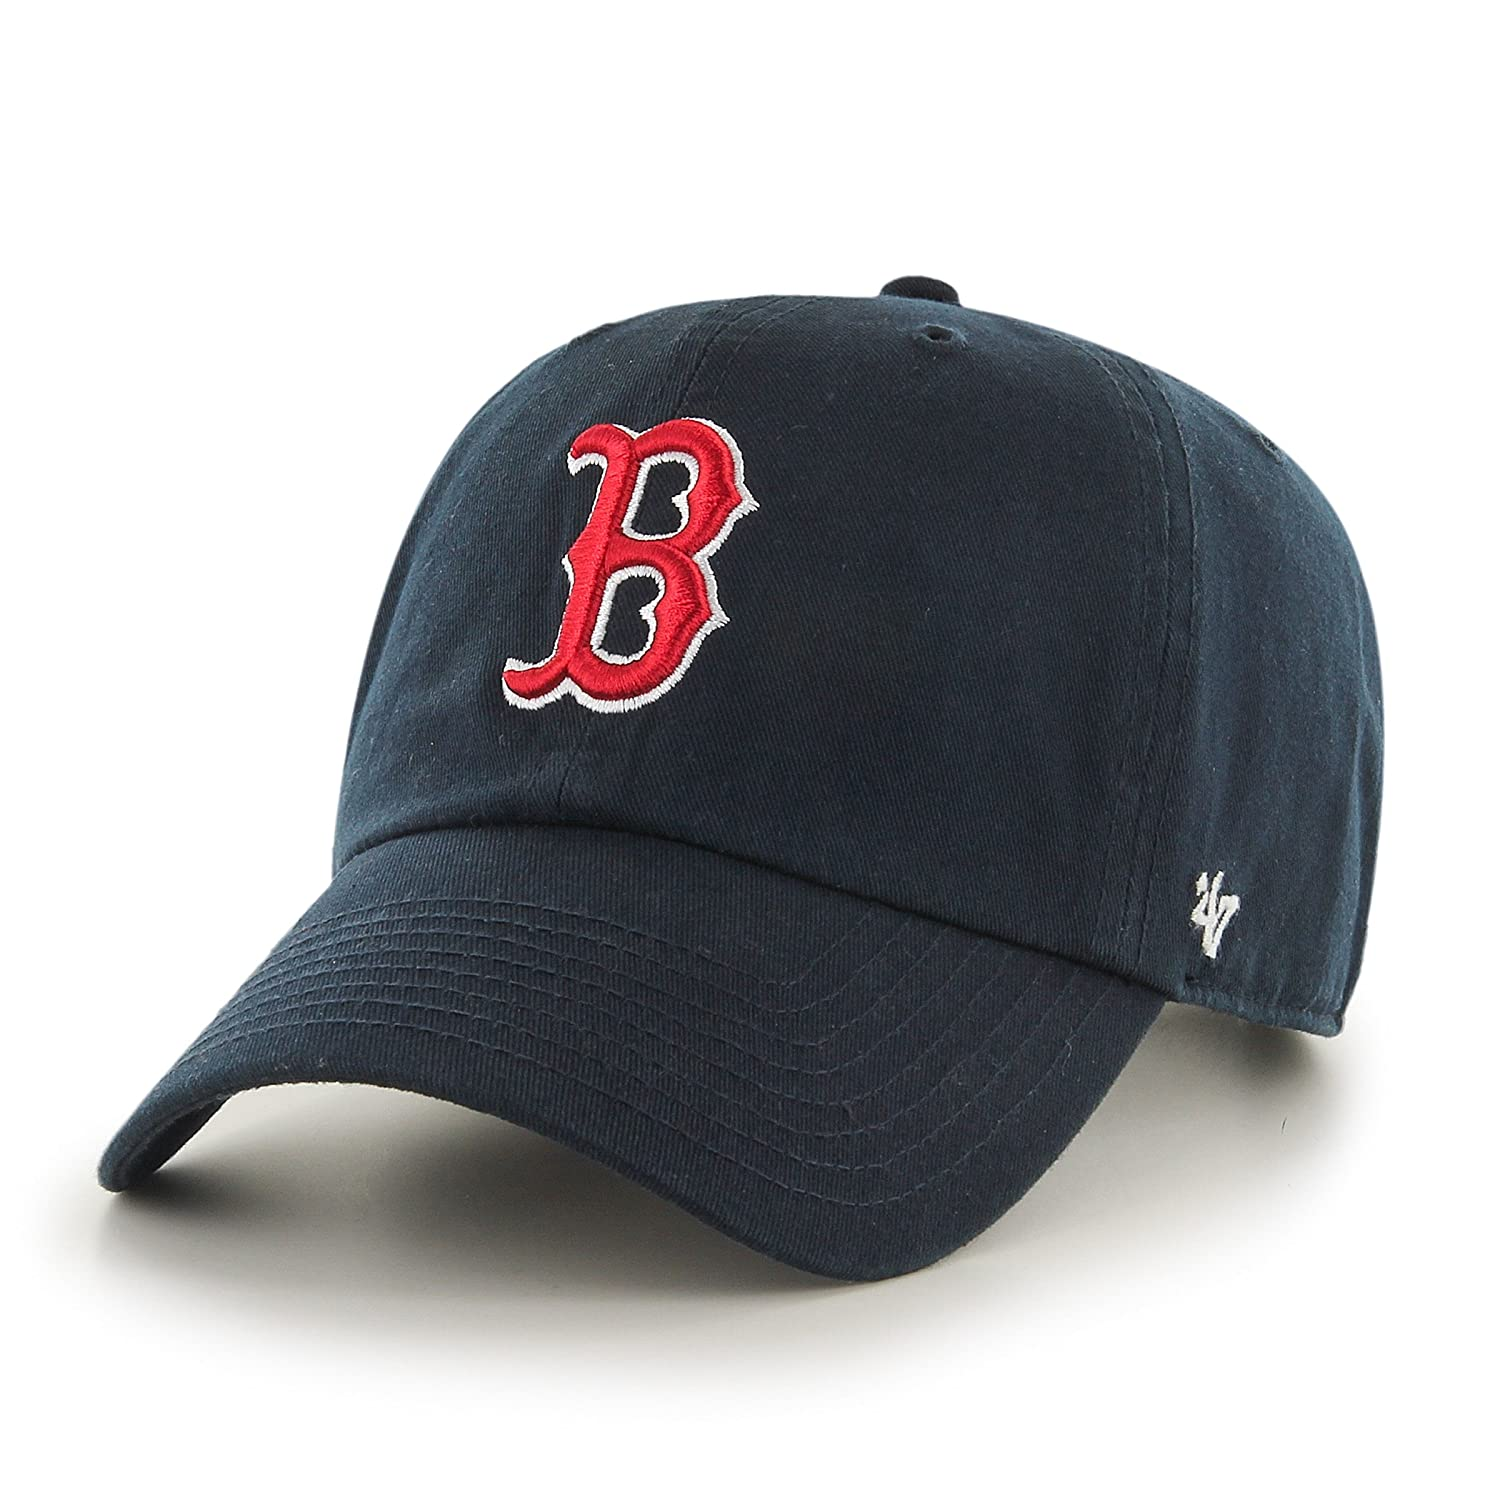 06fd259c05003 Amazon.com  Boston Red Sox - MLB   Fan Shop  Sports   Outdoors